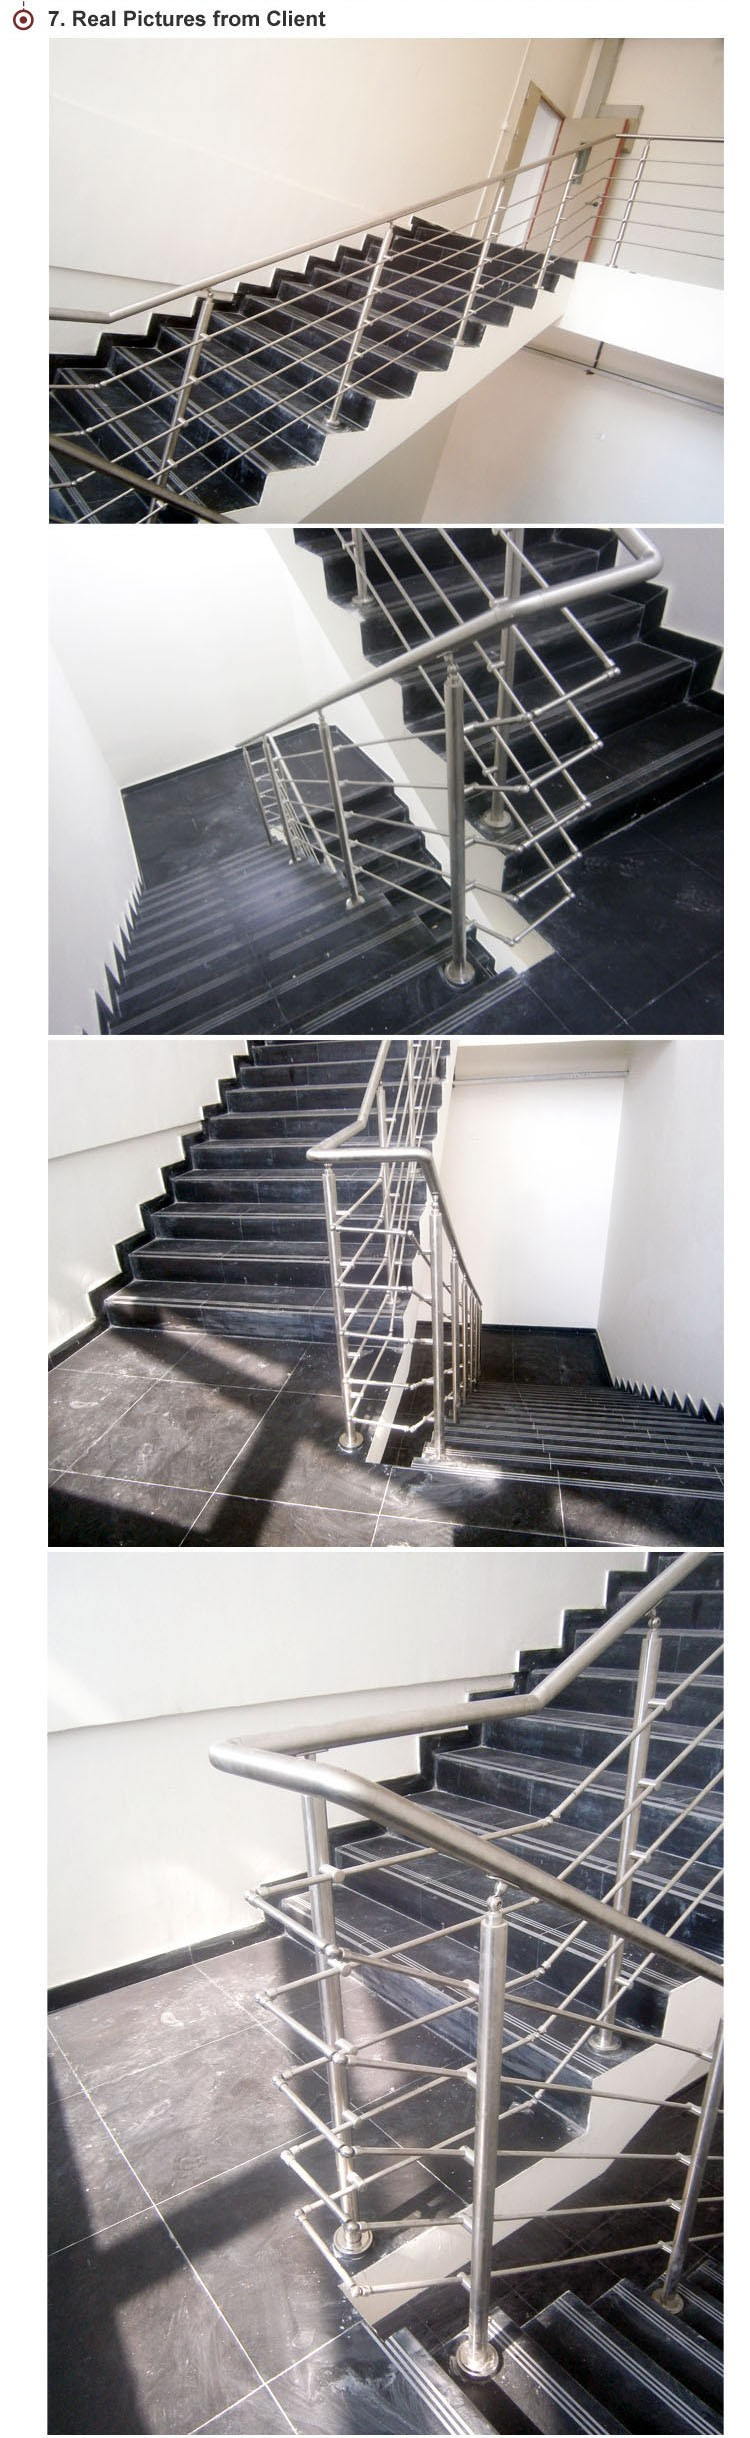 Outdoor Metal Stair Railing / Curved Stair Railing Kits / Stainless Steel  Handrail